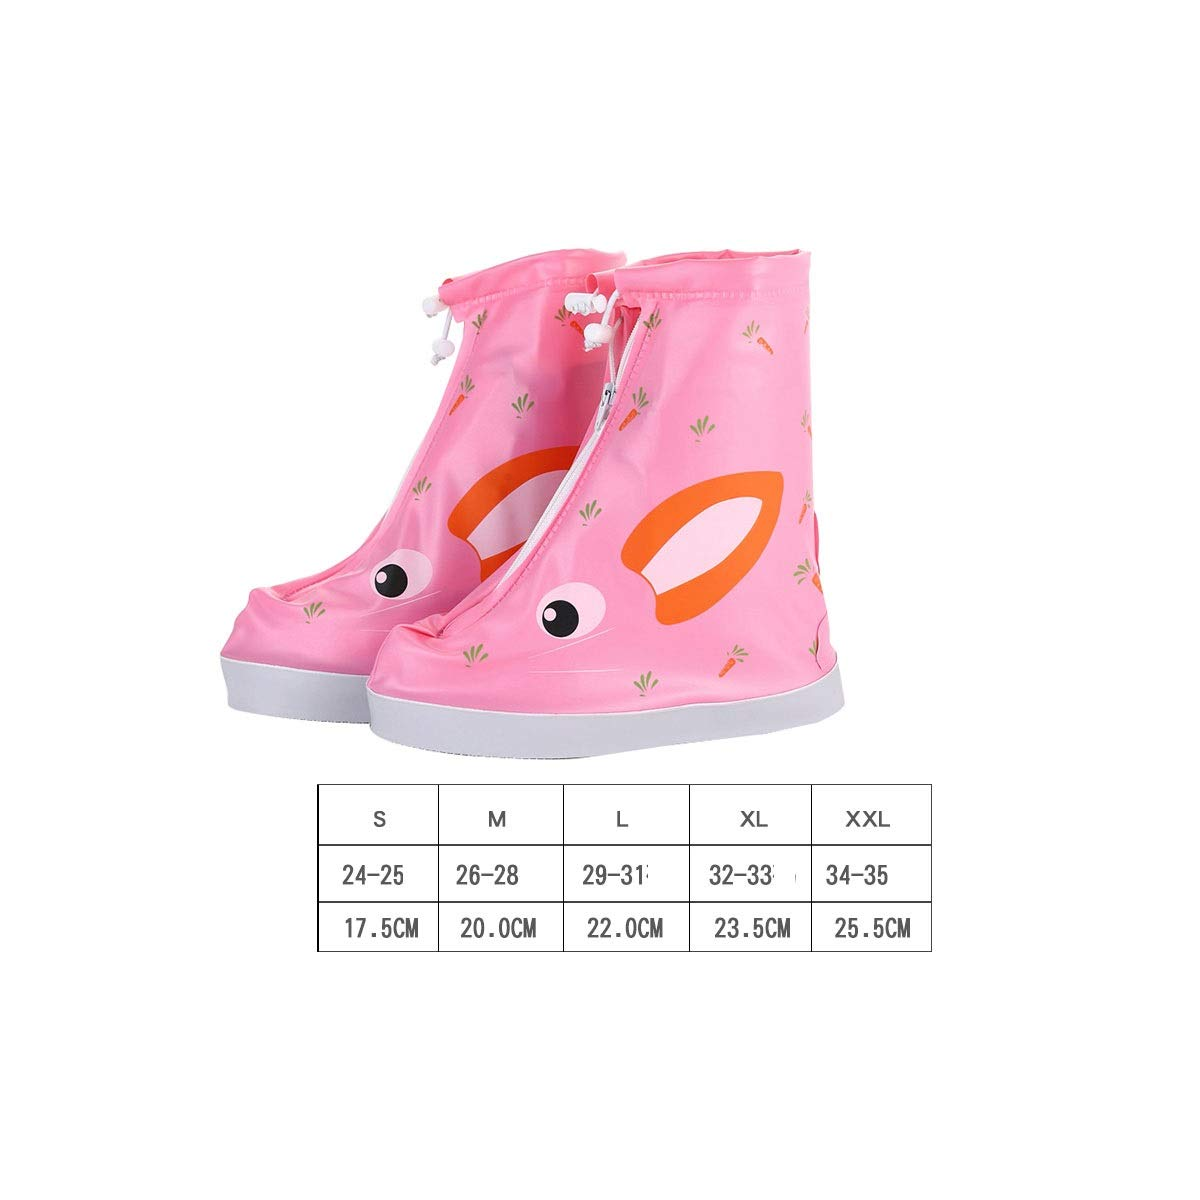 KAIYITONG Rain Boots, Waterproof Rainy Days Students Silicone Non-Slip Thick Wear-Resistant Rain Men and Women Cute Rain Boots Sets, More Colors to Choose from Multi-Purpose Shoe Covers